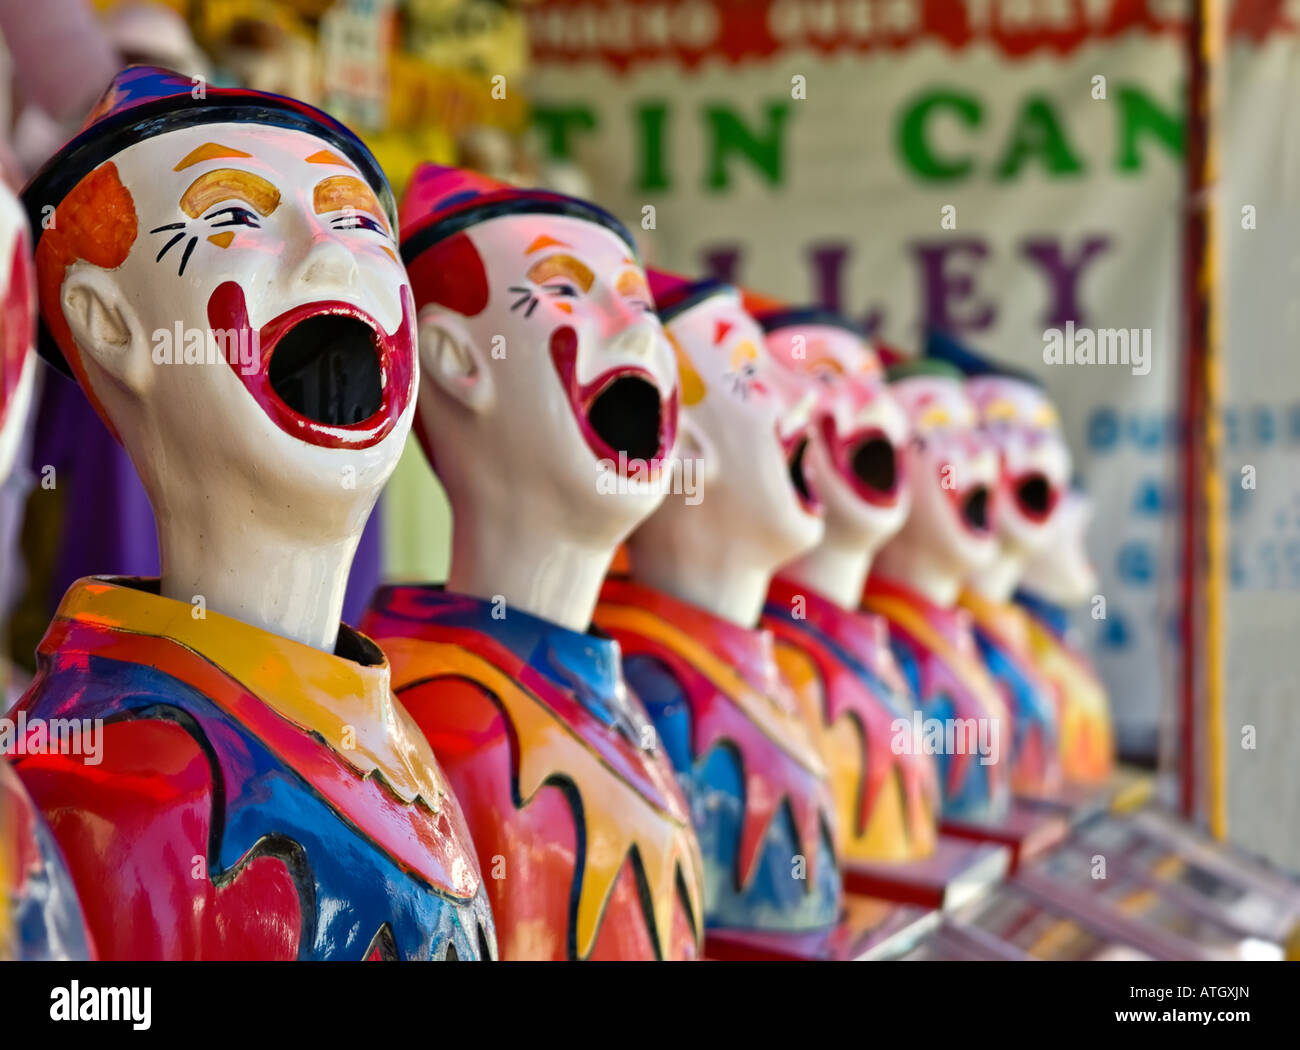 lots of clowns in a row at the fete - Stock Image